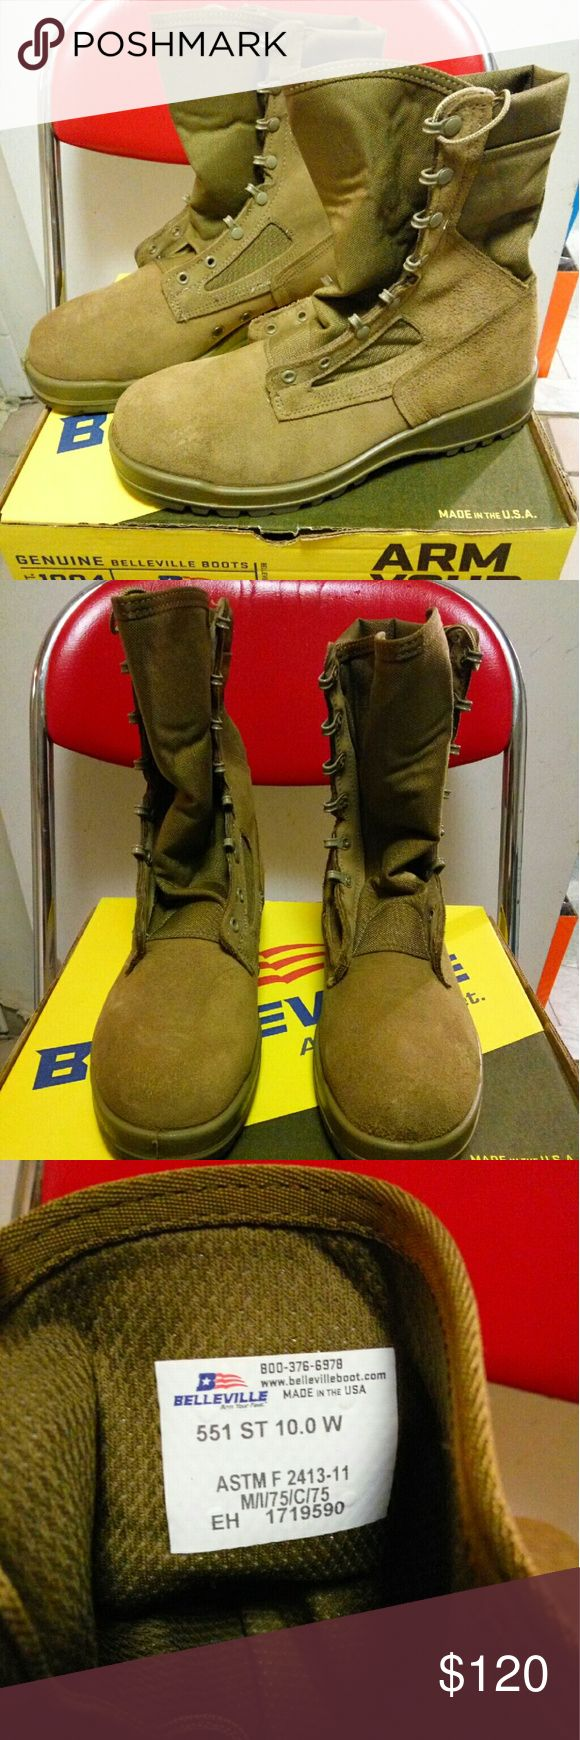 New Belleville 551 St  Jungle Desert Boots 10 NEW WITH BOX   Belleville 551 Hot Weather Steel Toe Coyote Suede Tan Combat Boot   (They come directly from the naval base shipyard)   MADE IN USA   size 10 Belleville Shoes Boots